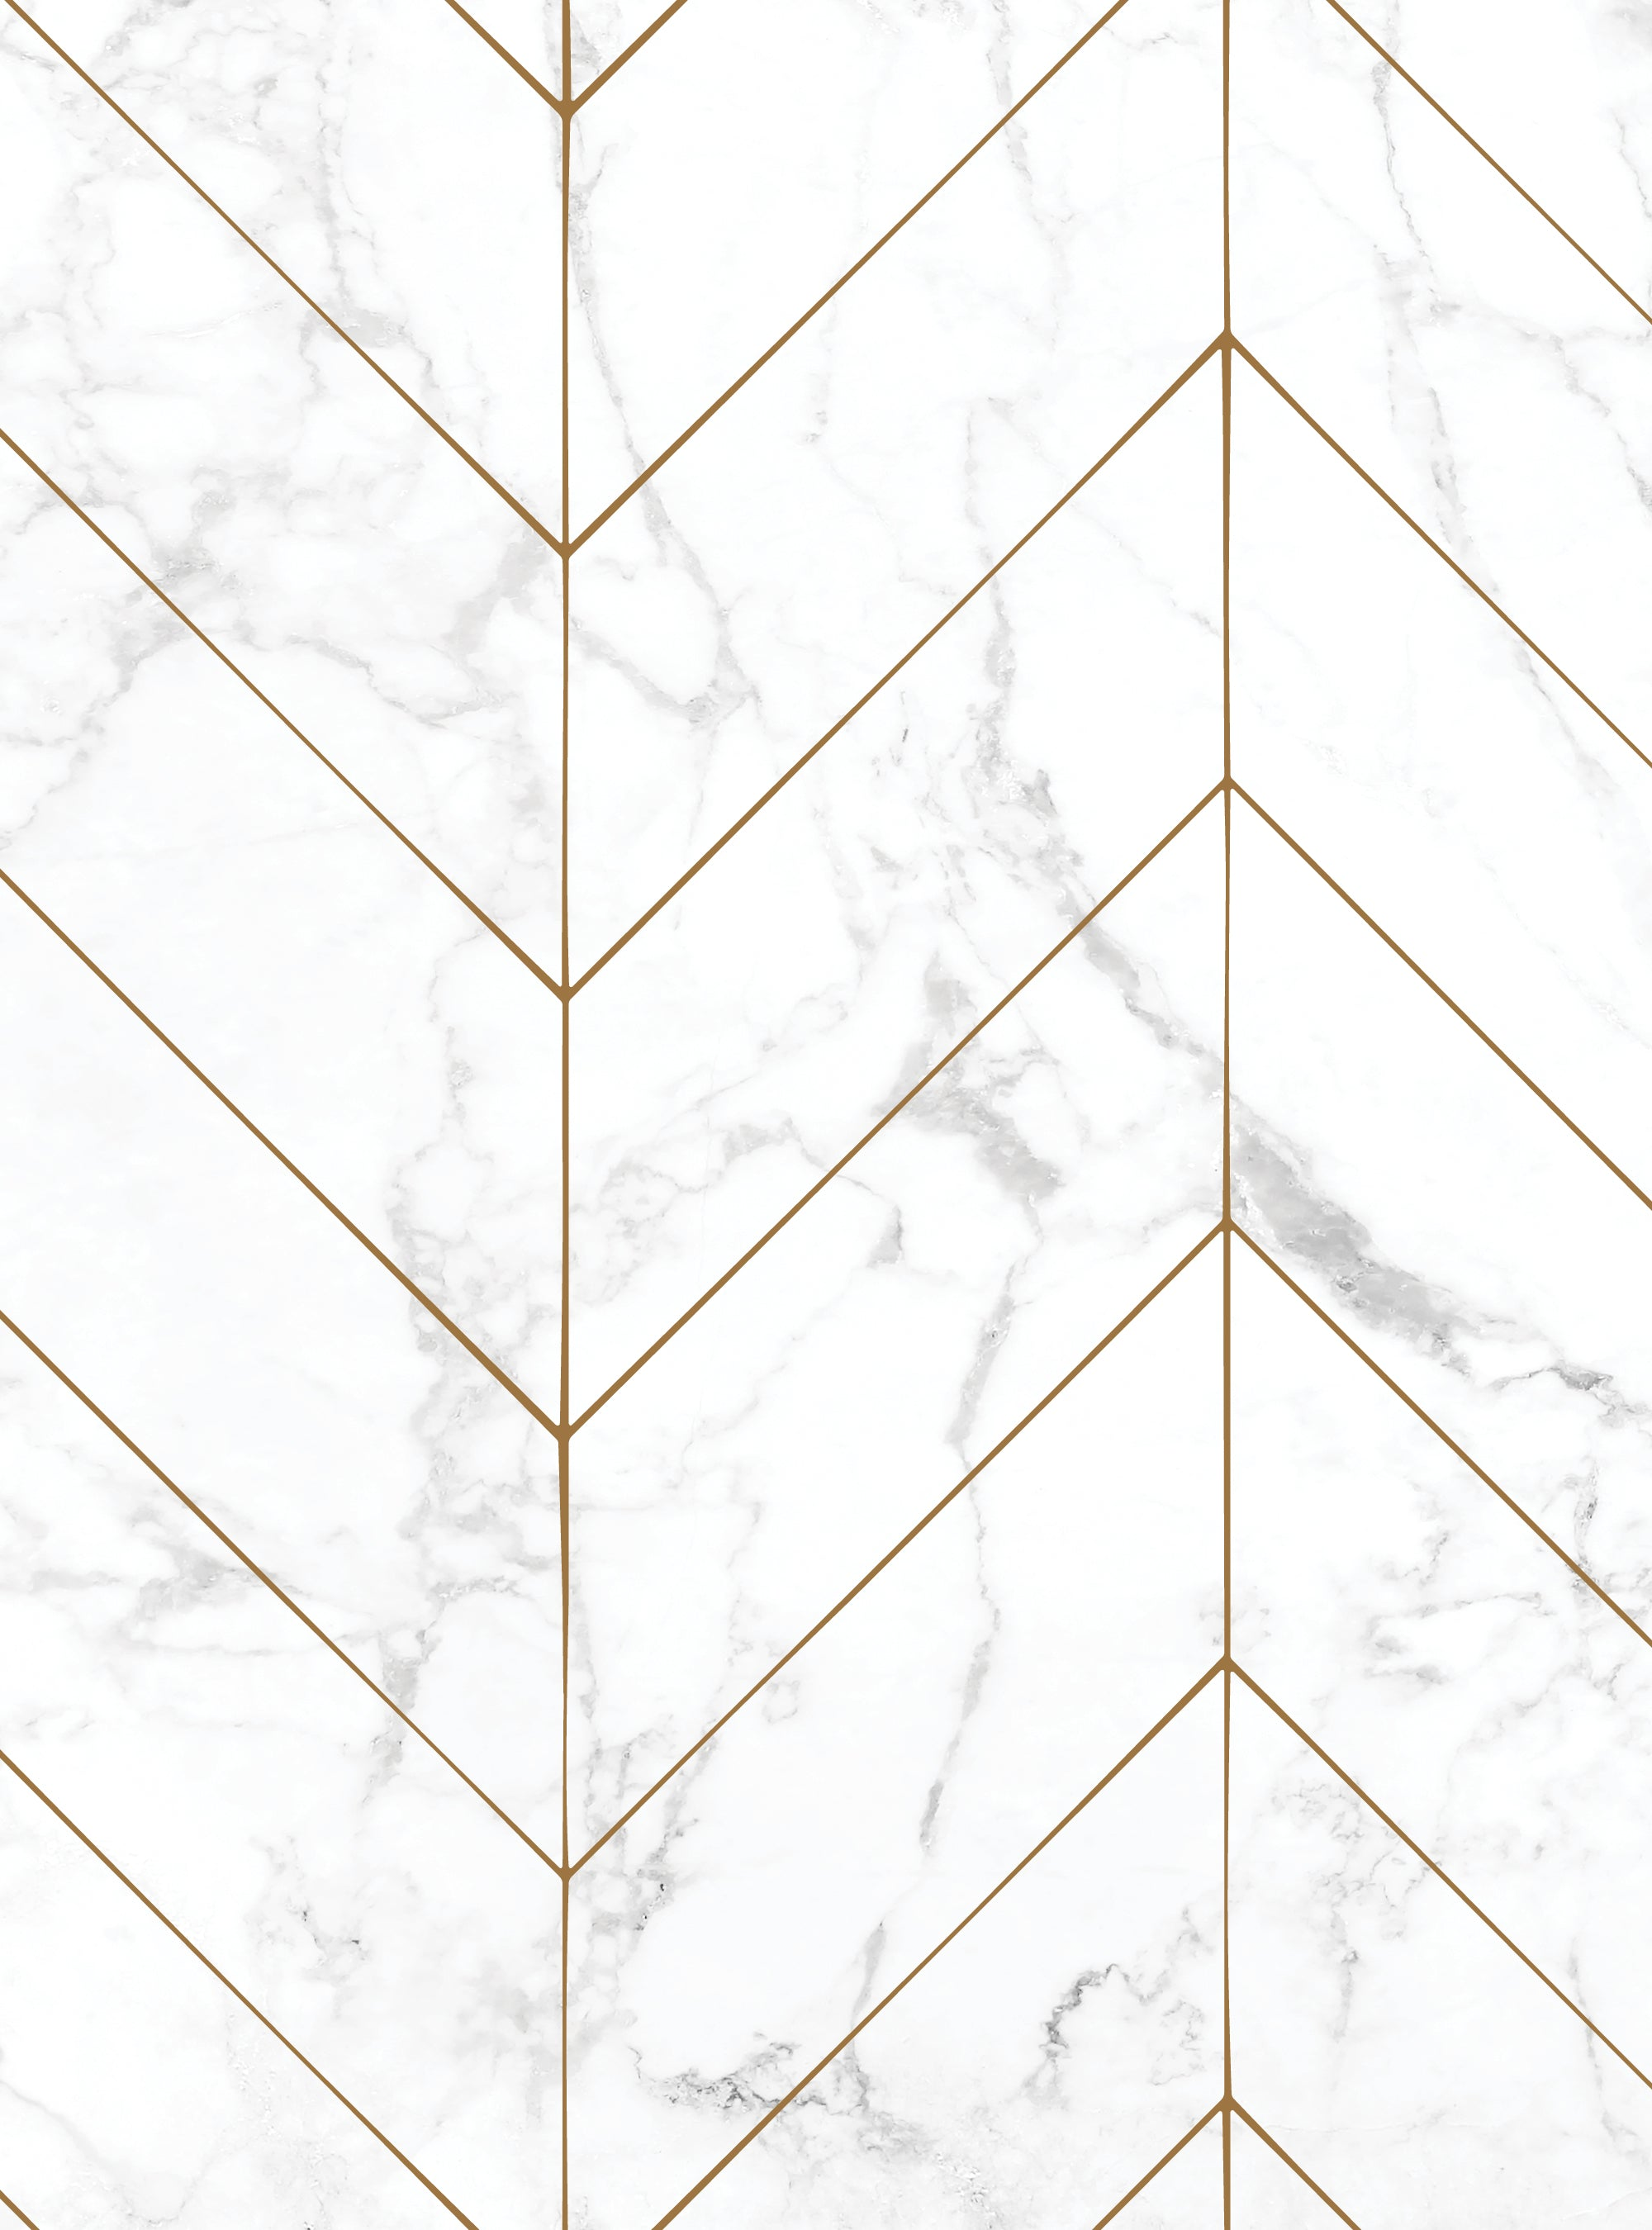 Chevron Marble Wallpaper Peel And Stick Simple Shapes